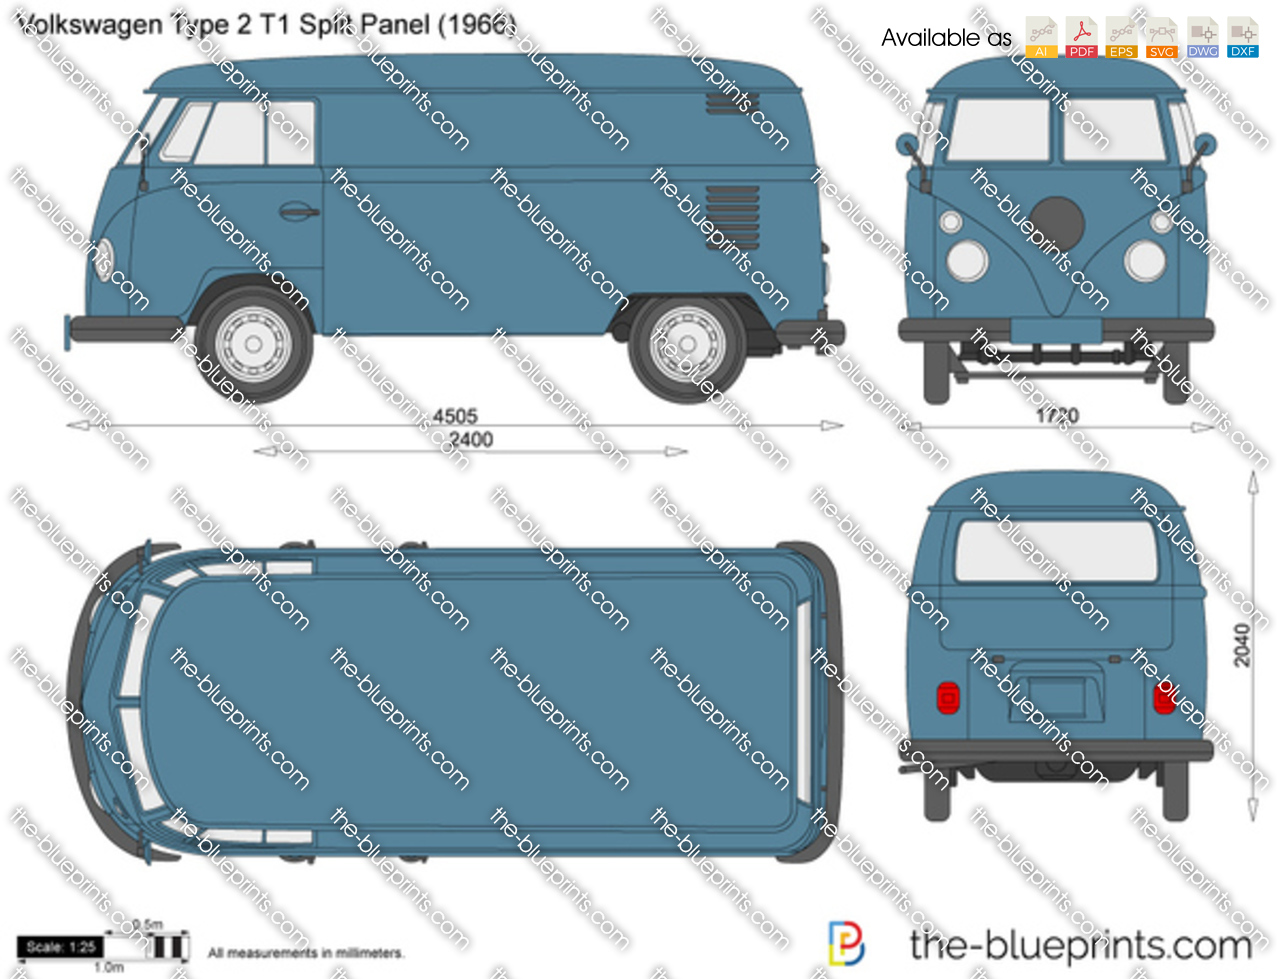 1952 Volkswagen Type 2 T1 Split Panel